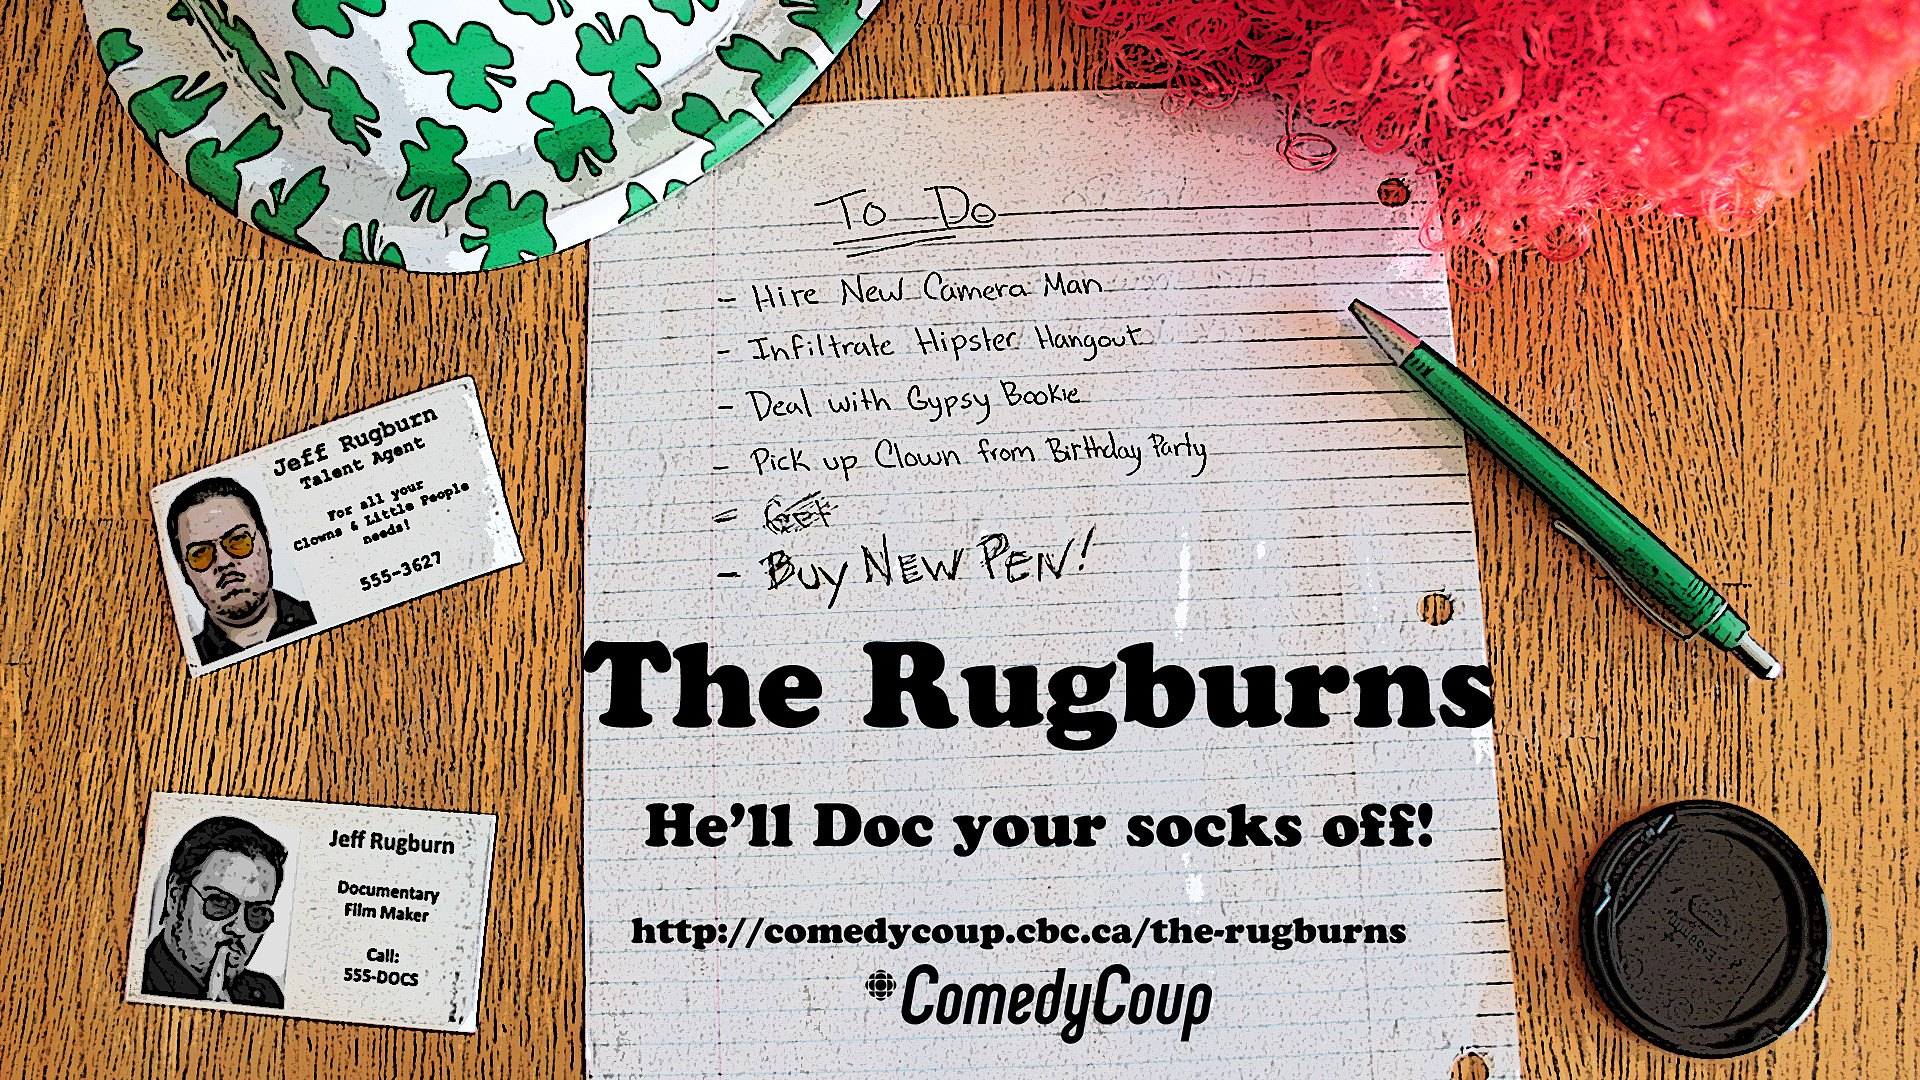 Week 4 Key It: Poster A The Rugburns